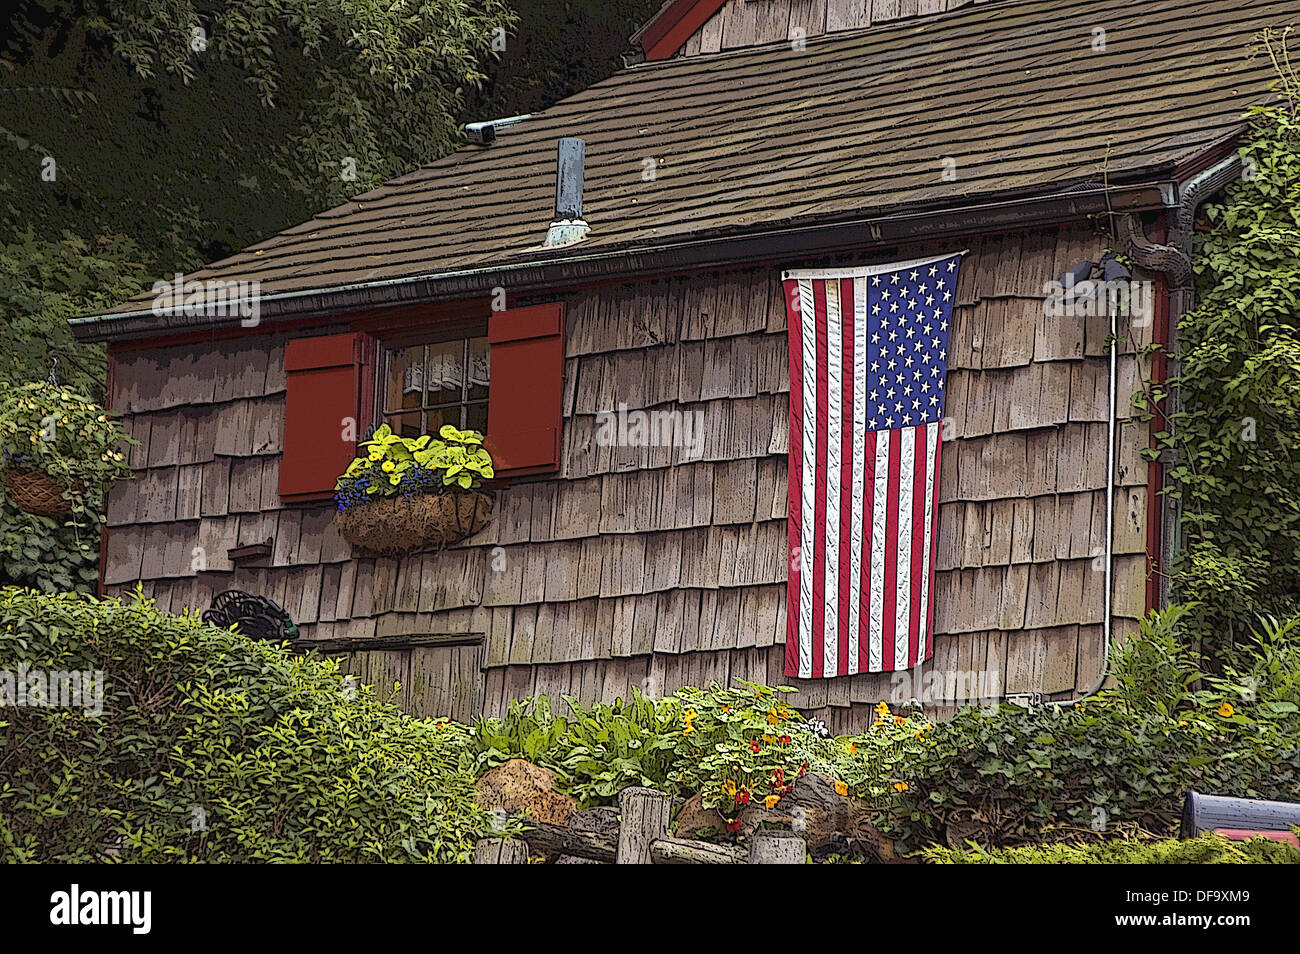 American Flag draped on the side of an historic home, at Independence Day USA Holiday, July 4th. New York. USA. - Stock Image